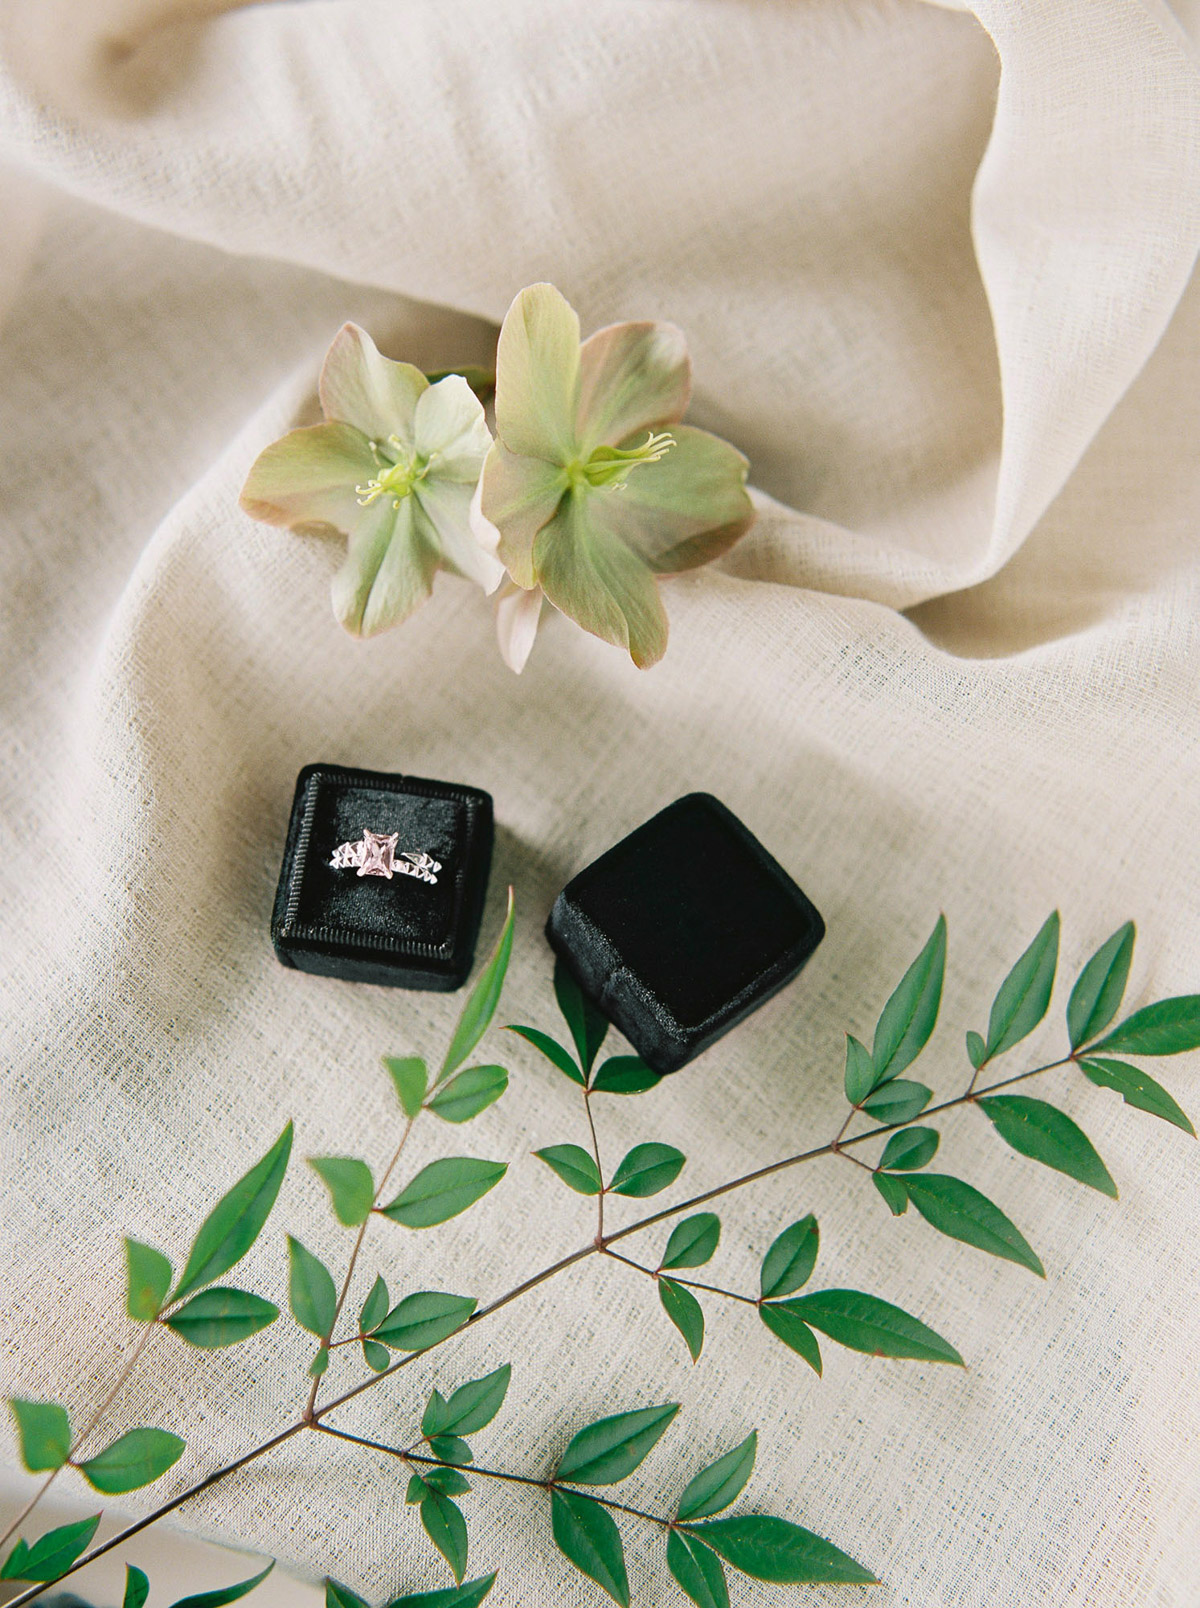 will-reid-photo-vineyard-bride-swish-list-kurtz-orchards-market-niagara-on-the-lake-wedding-editorial-45.jpg